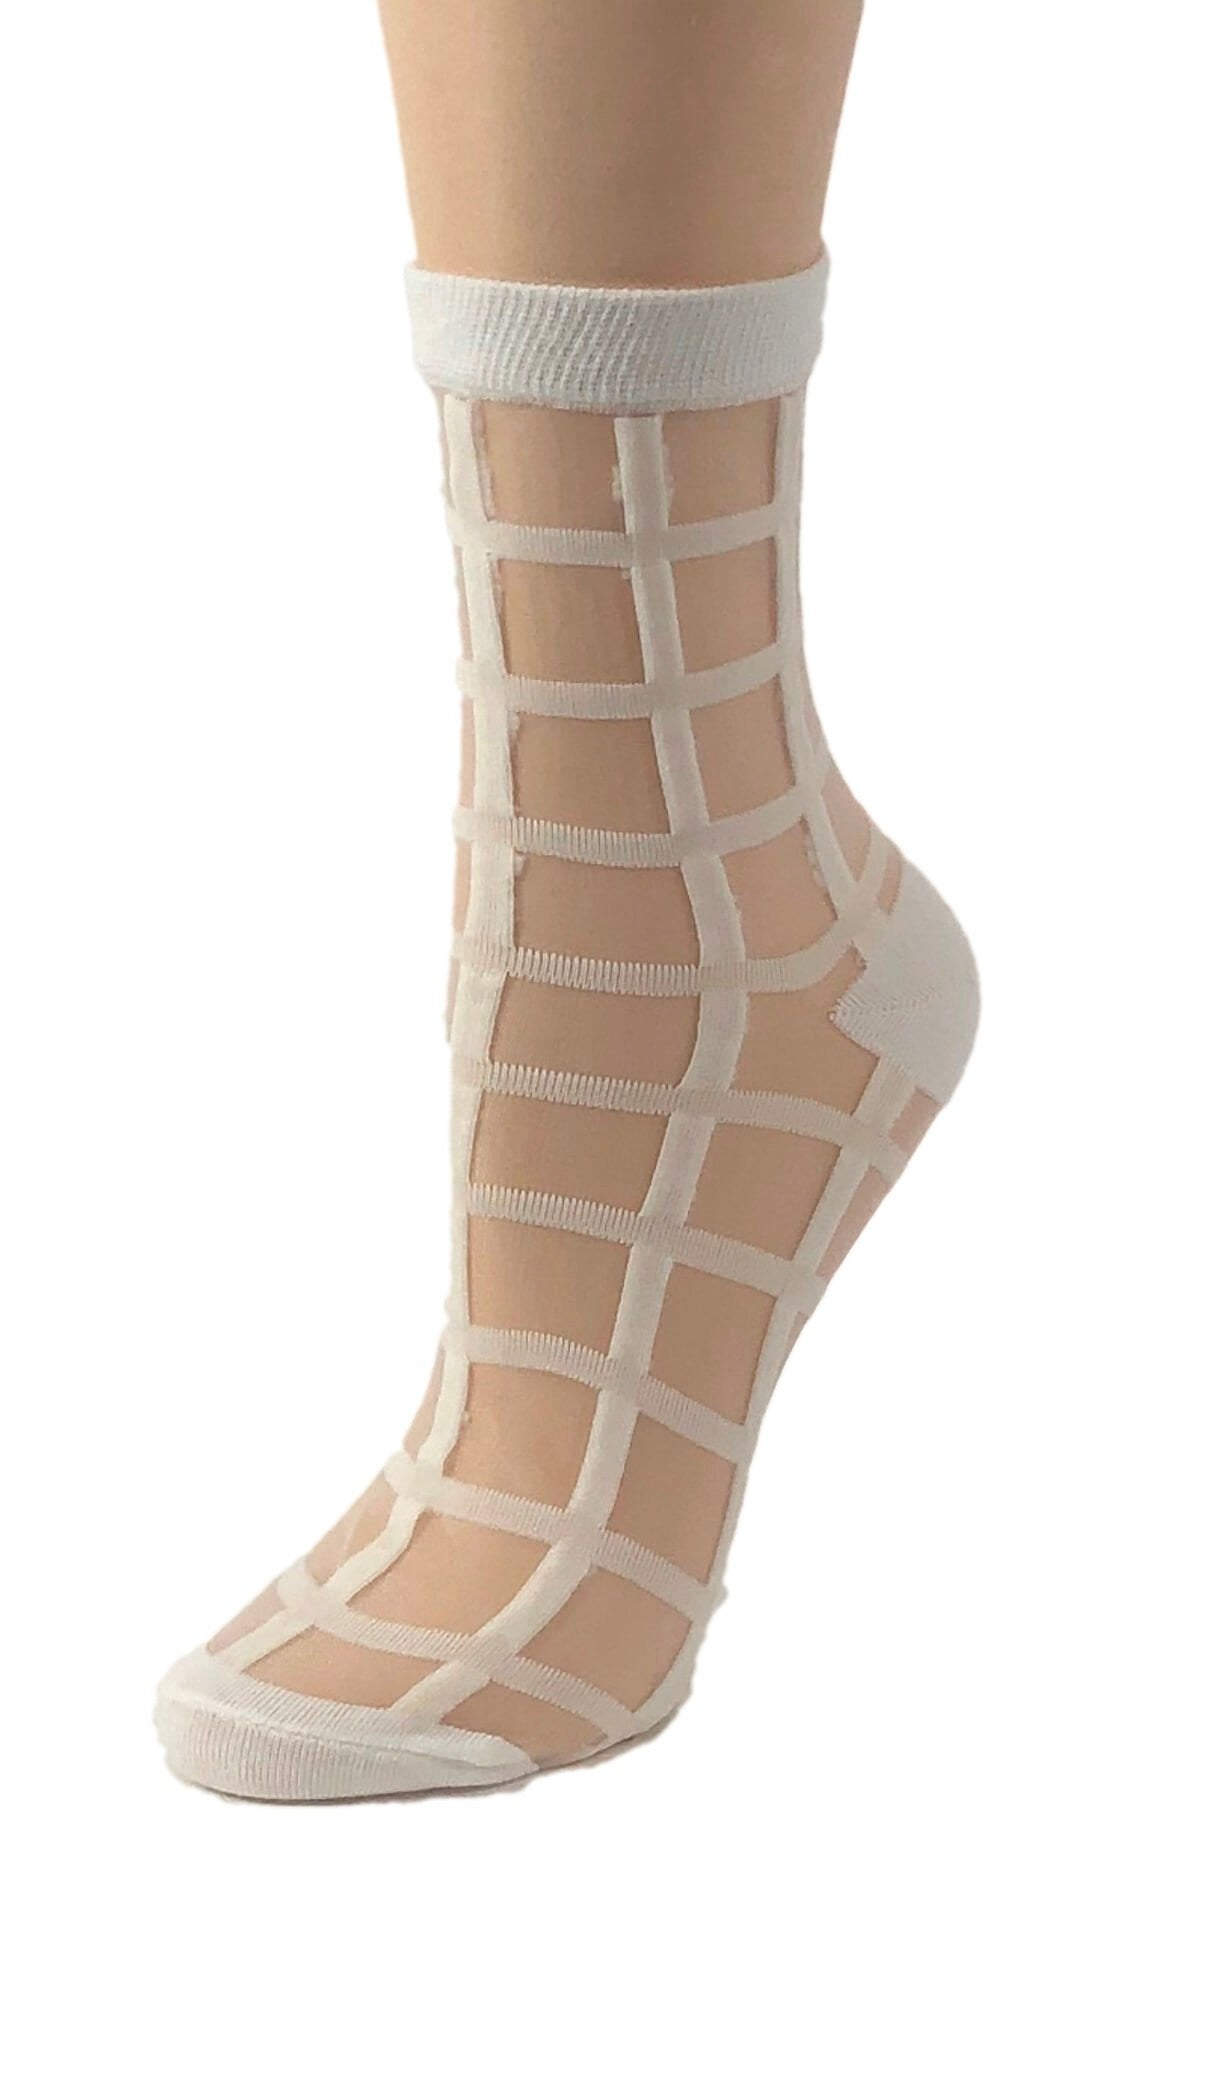 Ivory White Sheer Socks - Global Trendz Fashion®